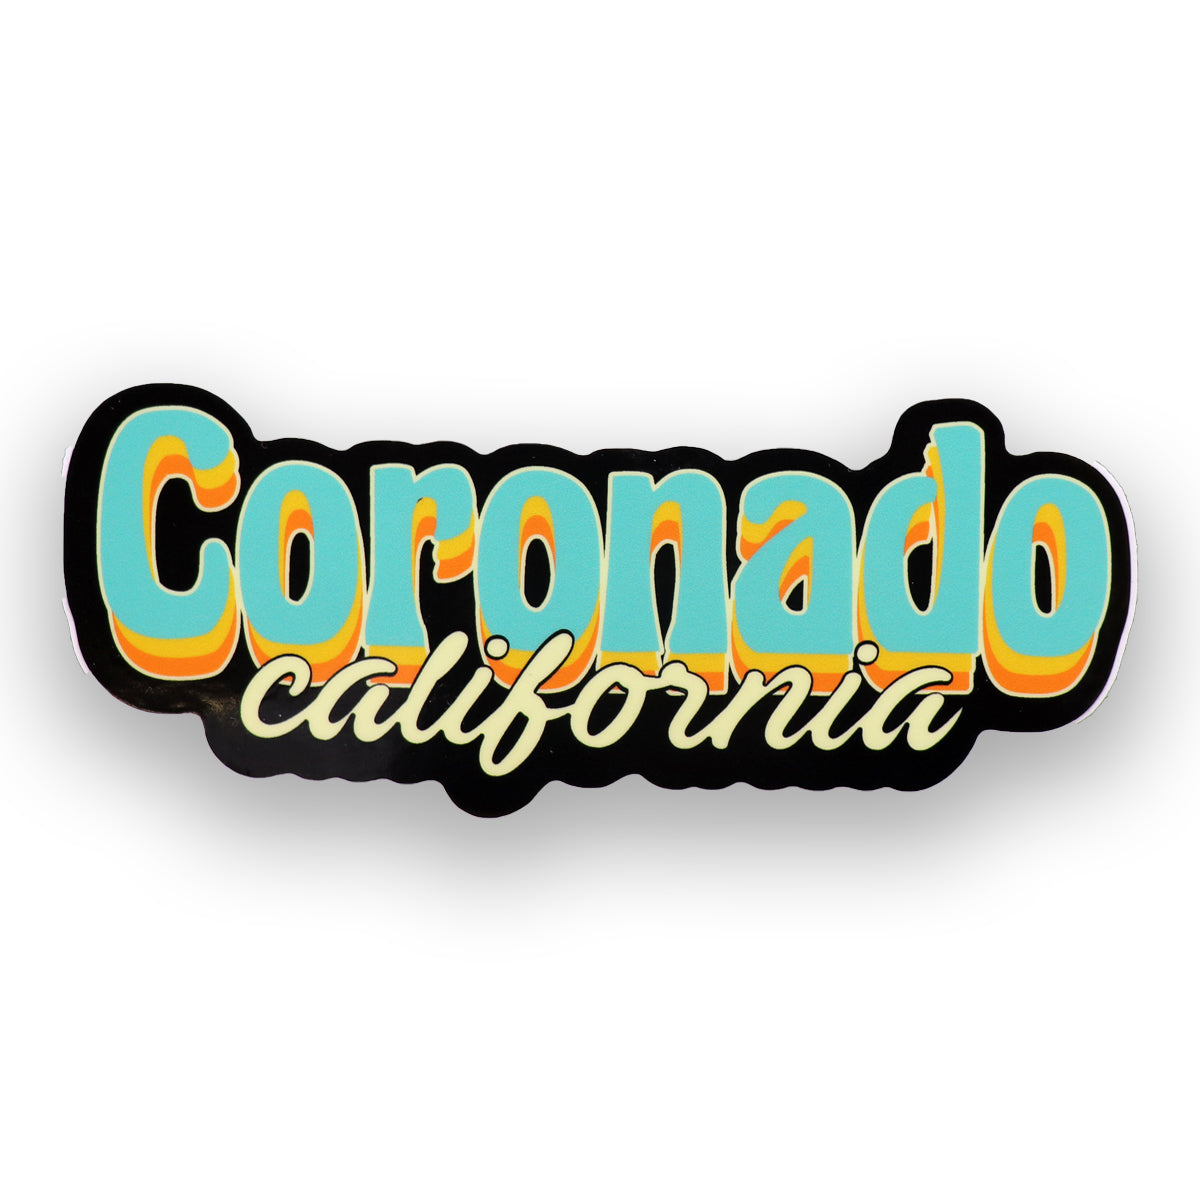 Coronado California sticker with groovy lettering in teal, light yellow, orange and black outline. California in cursive in at the bottom in beige color. Cool California stickers sold by SDTrading Co.